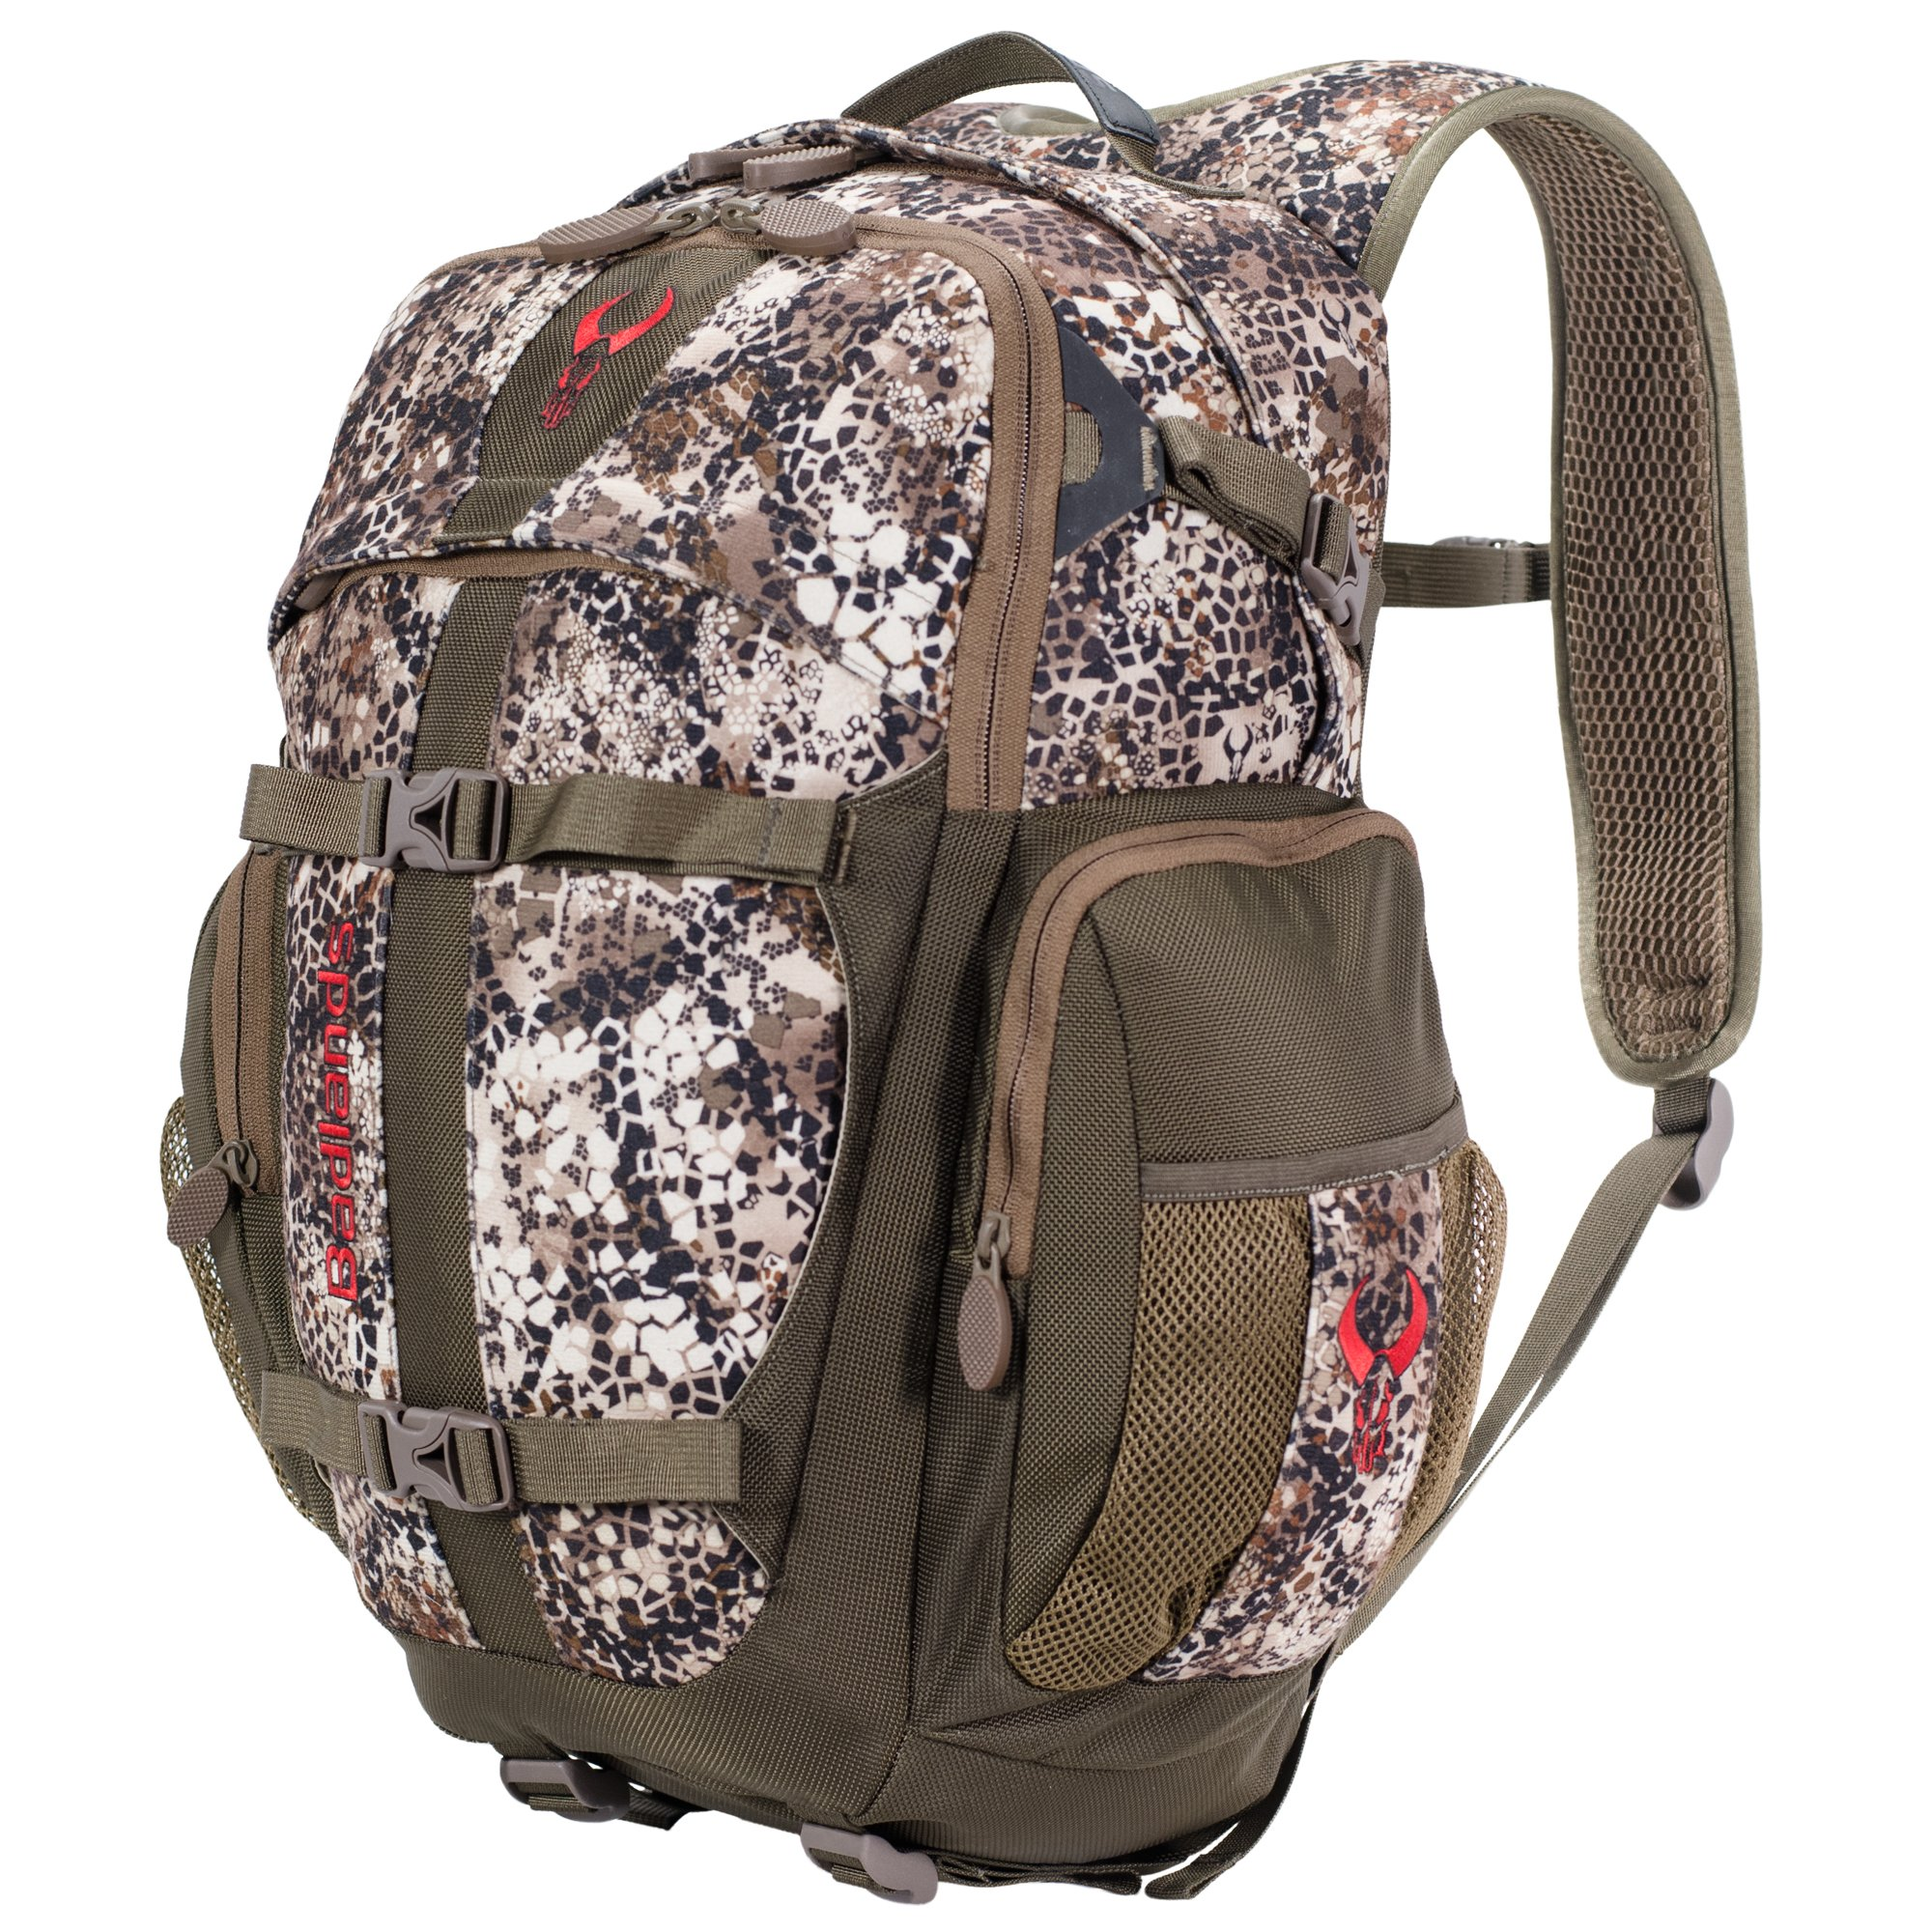 Badlands Pursuit Camouflage Hunting Day Pack - Bow and Rifle Compatible, Approach FX